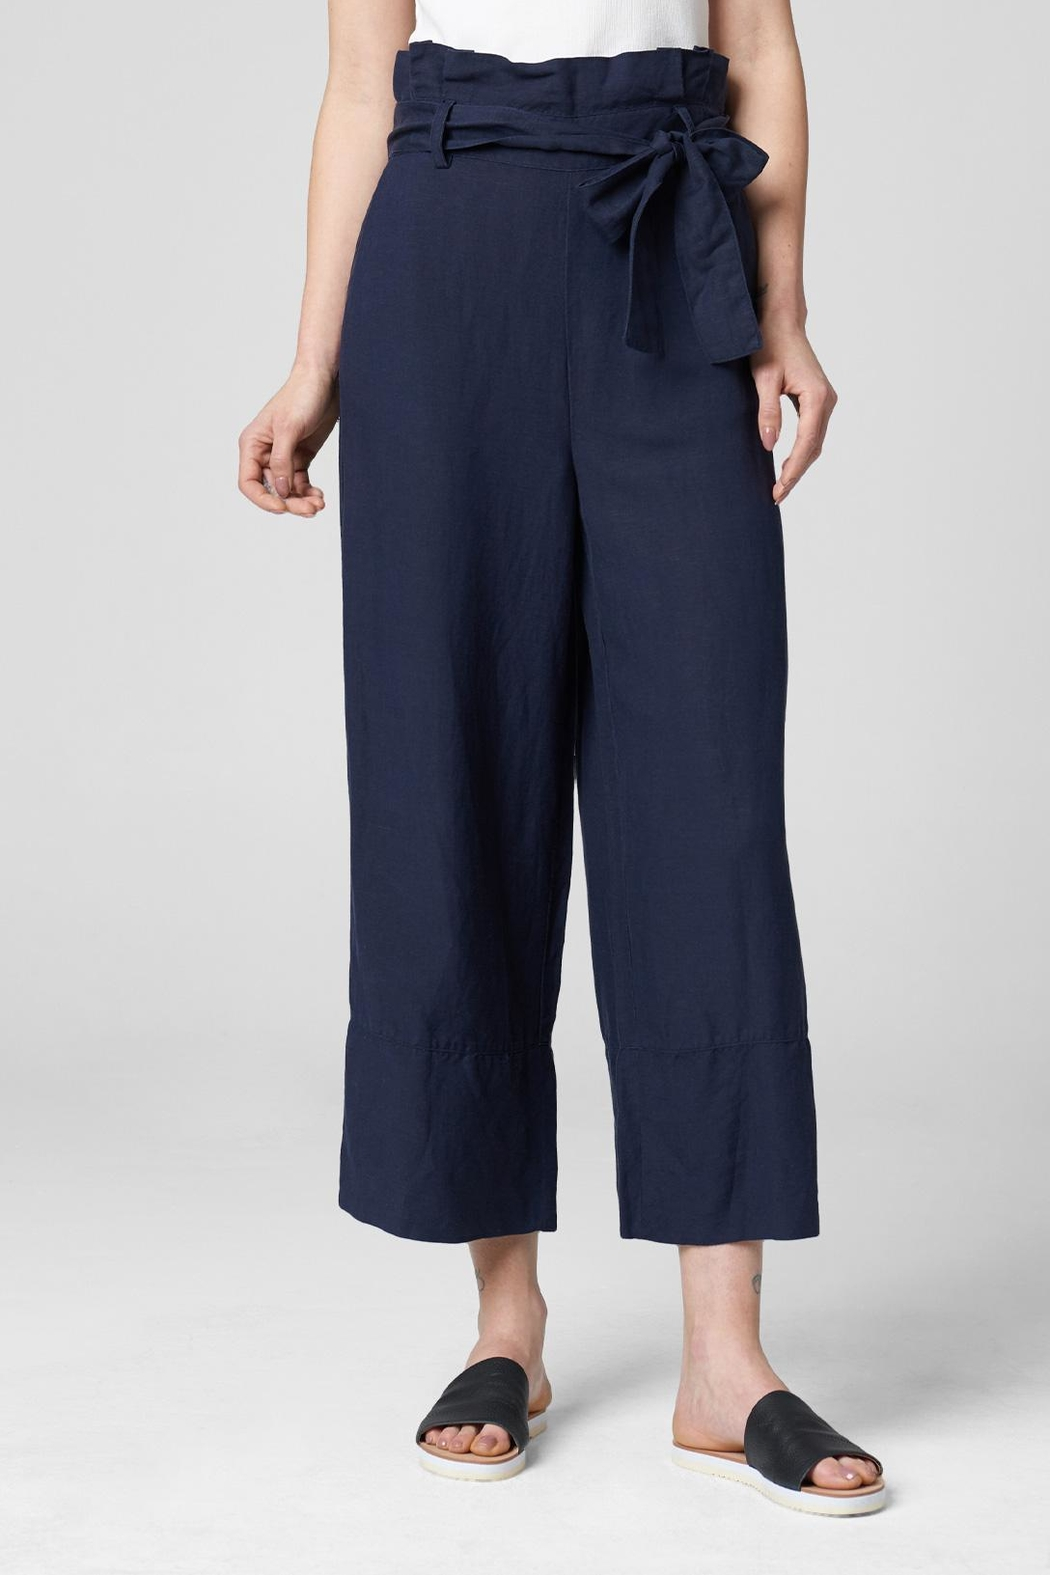 Blank NYC Navy Paperbag Pant - Front Full Image